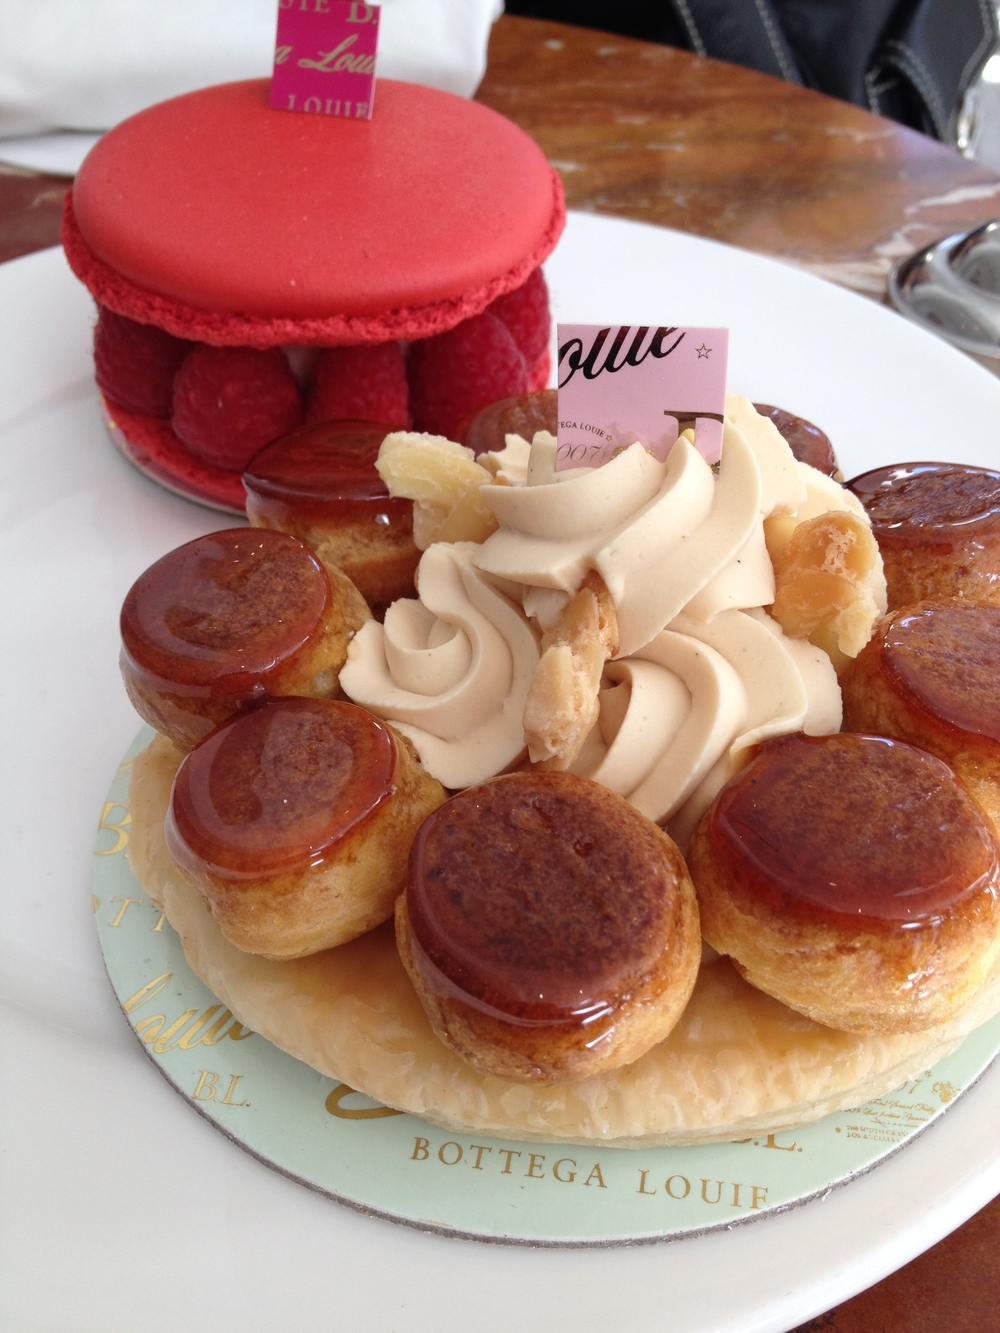 (Background) Le Grand Macaron, a French almond cookie with vanilla cream, raspberry jam, and raspberries  (Foreground) St. Honoré cake  with a base of puff pastry, cream puffs, and a ring of piped pâte à choux.